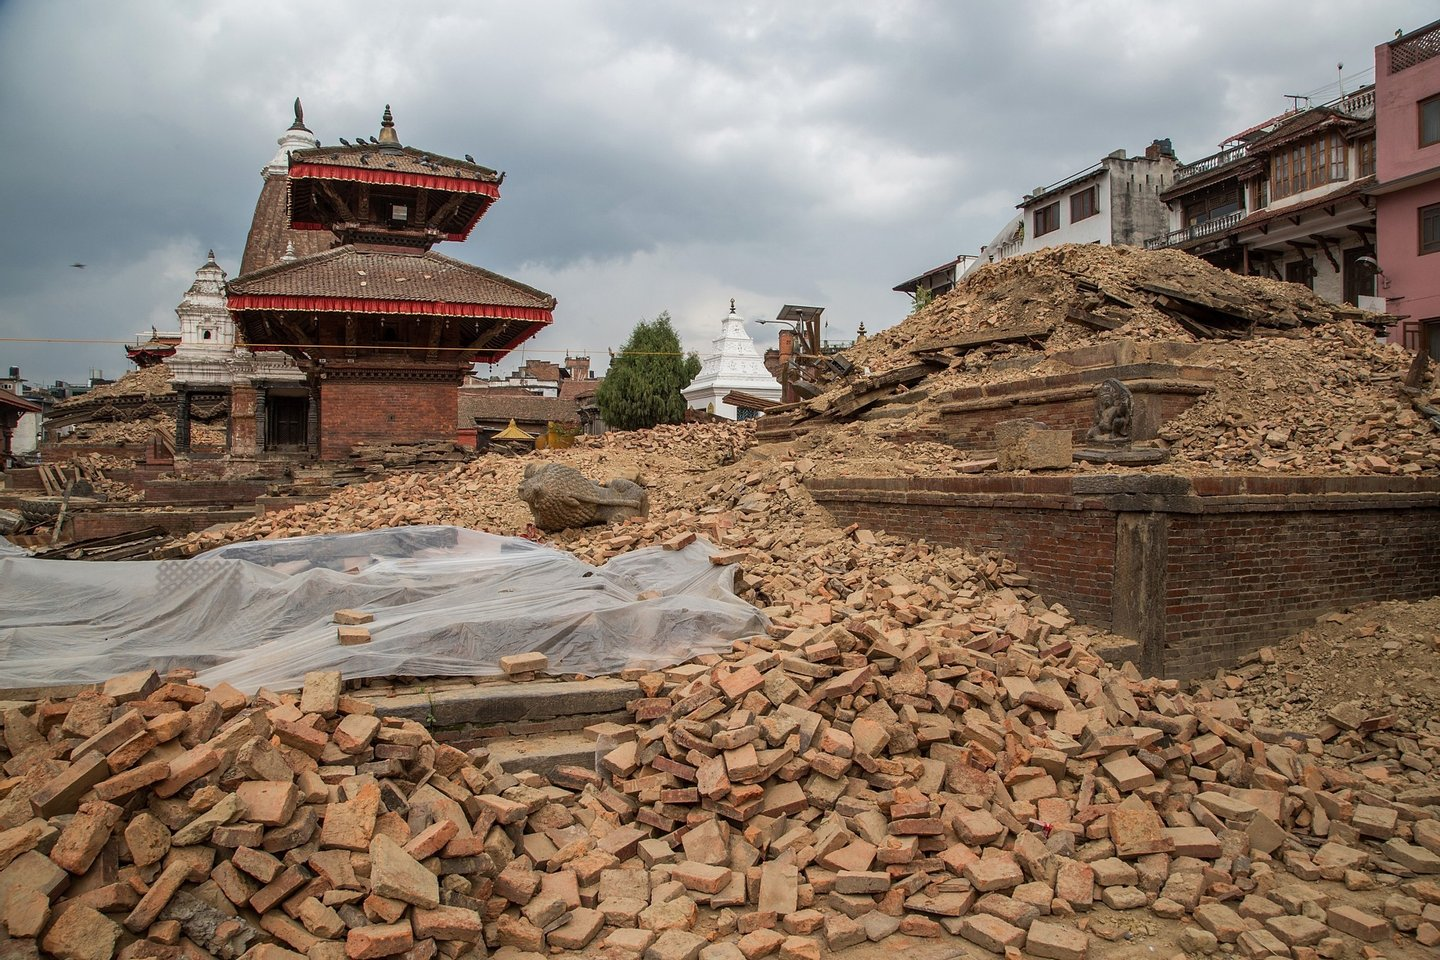 LALITPUR, NEPAL - APRIL 28:  Remains of a collapsed temple in the UNESCO World Heritage Site of Patan Durbar Square on April 28, 2015 in Lalitpur, Nepal. A major 7.8 earthquake hit Kathmandu mid-day on Saturday, and was followed by multiple aftershocks that triggered avalanches on Mt. Everest that buried mountain climbers in their base camps. Many houses, buildings and temples in the capital were destroyed during the earthquake, leaving thousands dead or trapped under the debris as emergency rescue workers attempt to clear debris and find survivors. Regular aftershocks have hampered recovery missions as locals, officials and aid workers attempt to recover bodies from the rubble.  (Photo by Omar Havana/Getty Images)